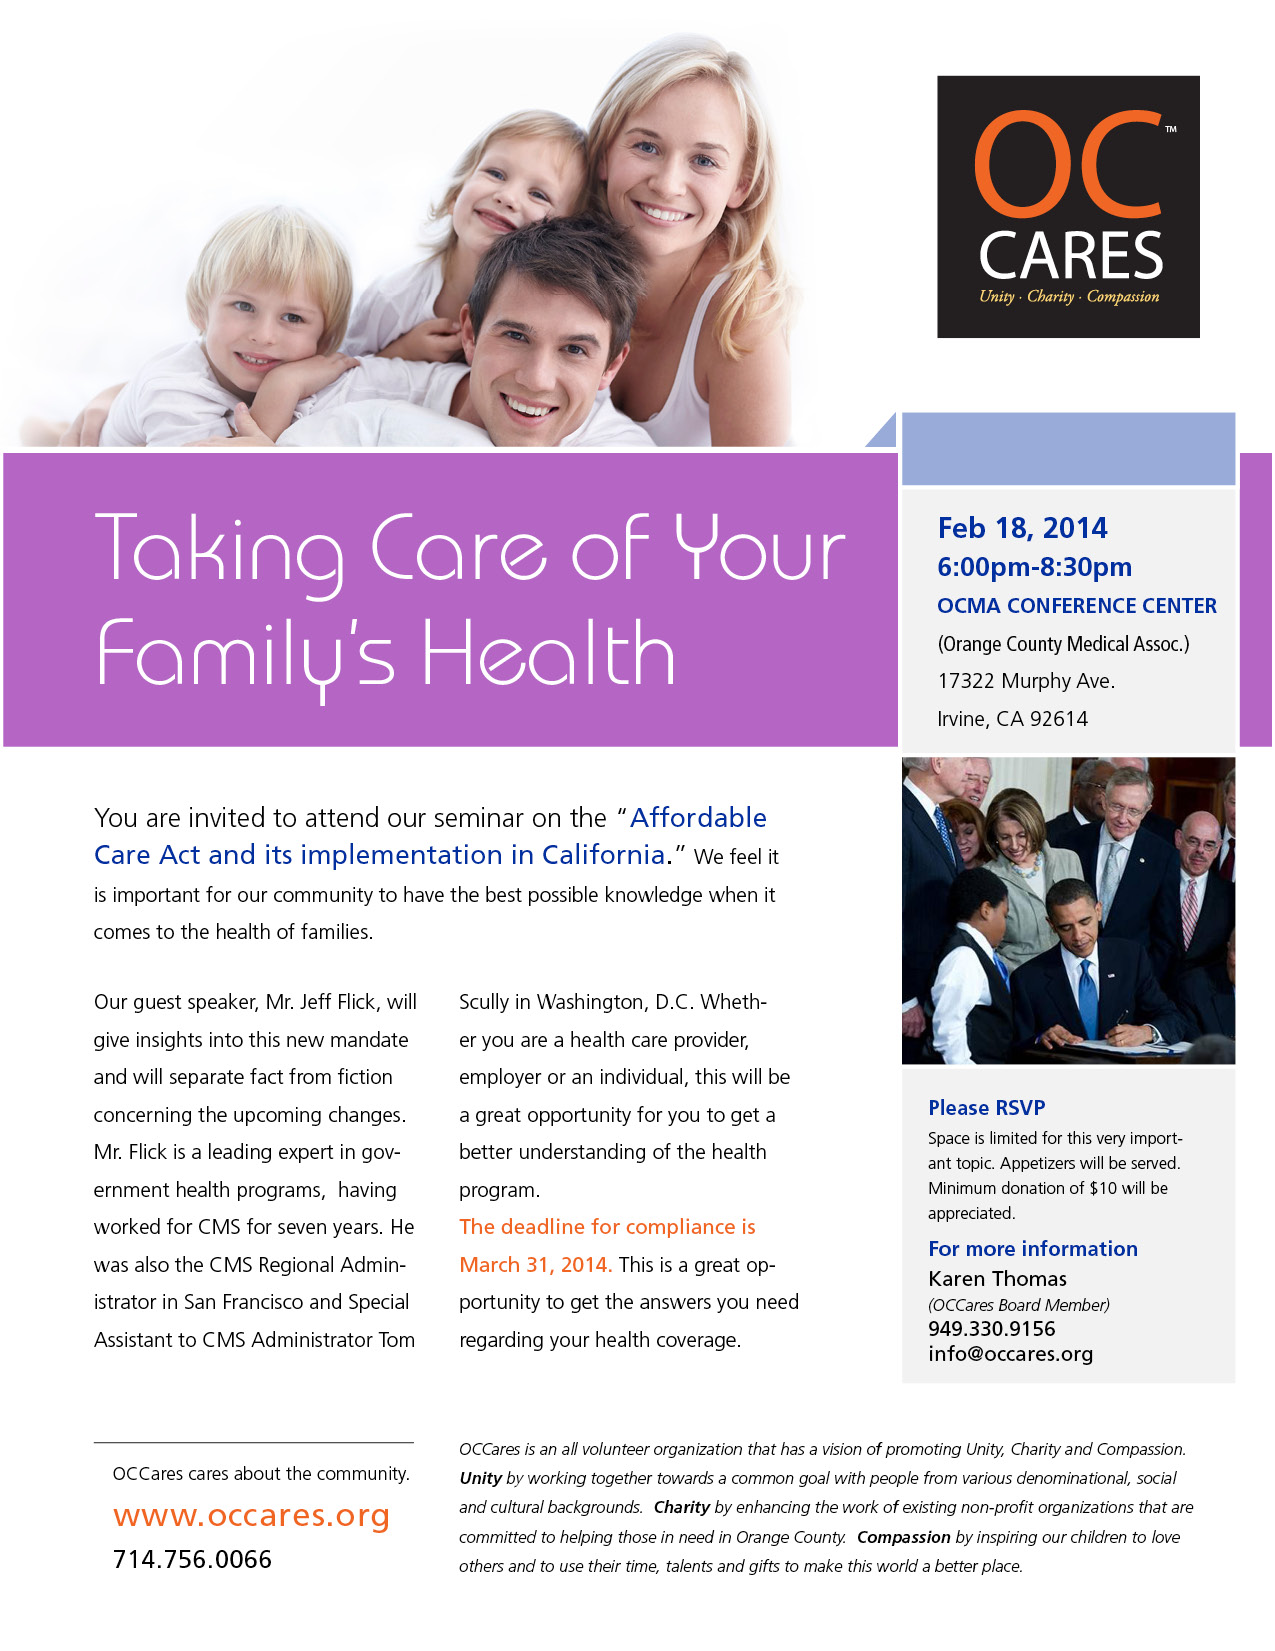 OCCares Flyer - Taking Care of your Health